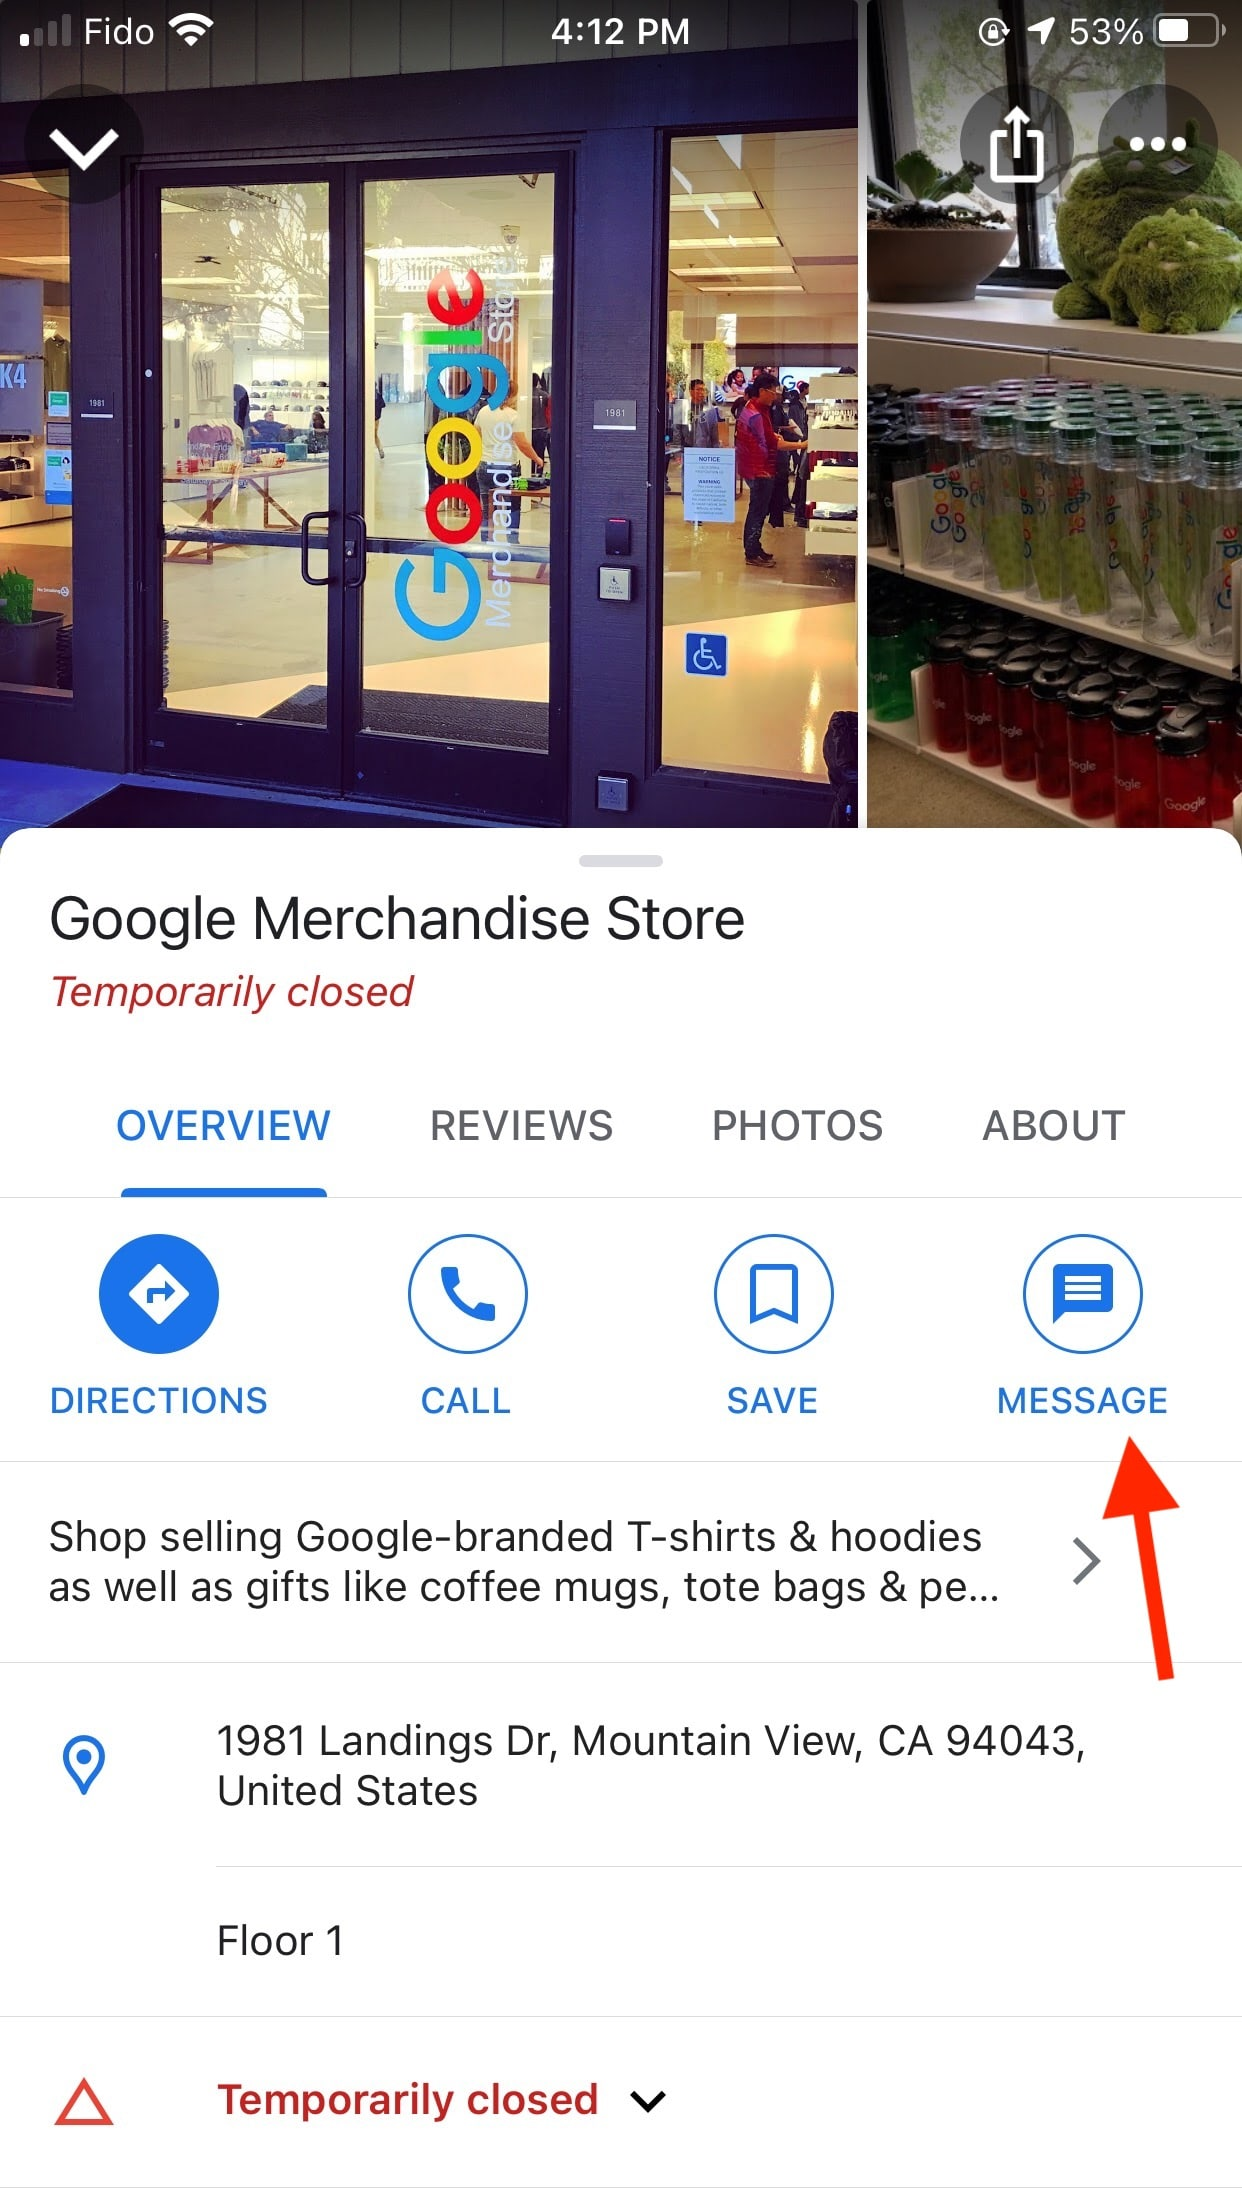 Google Merchandise Store message button